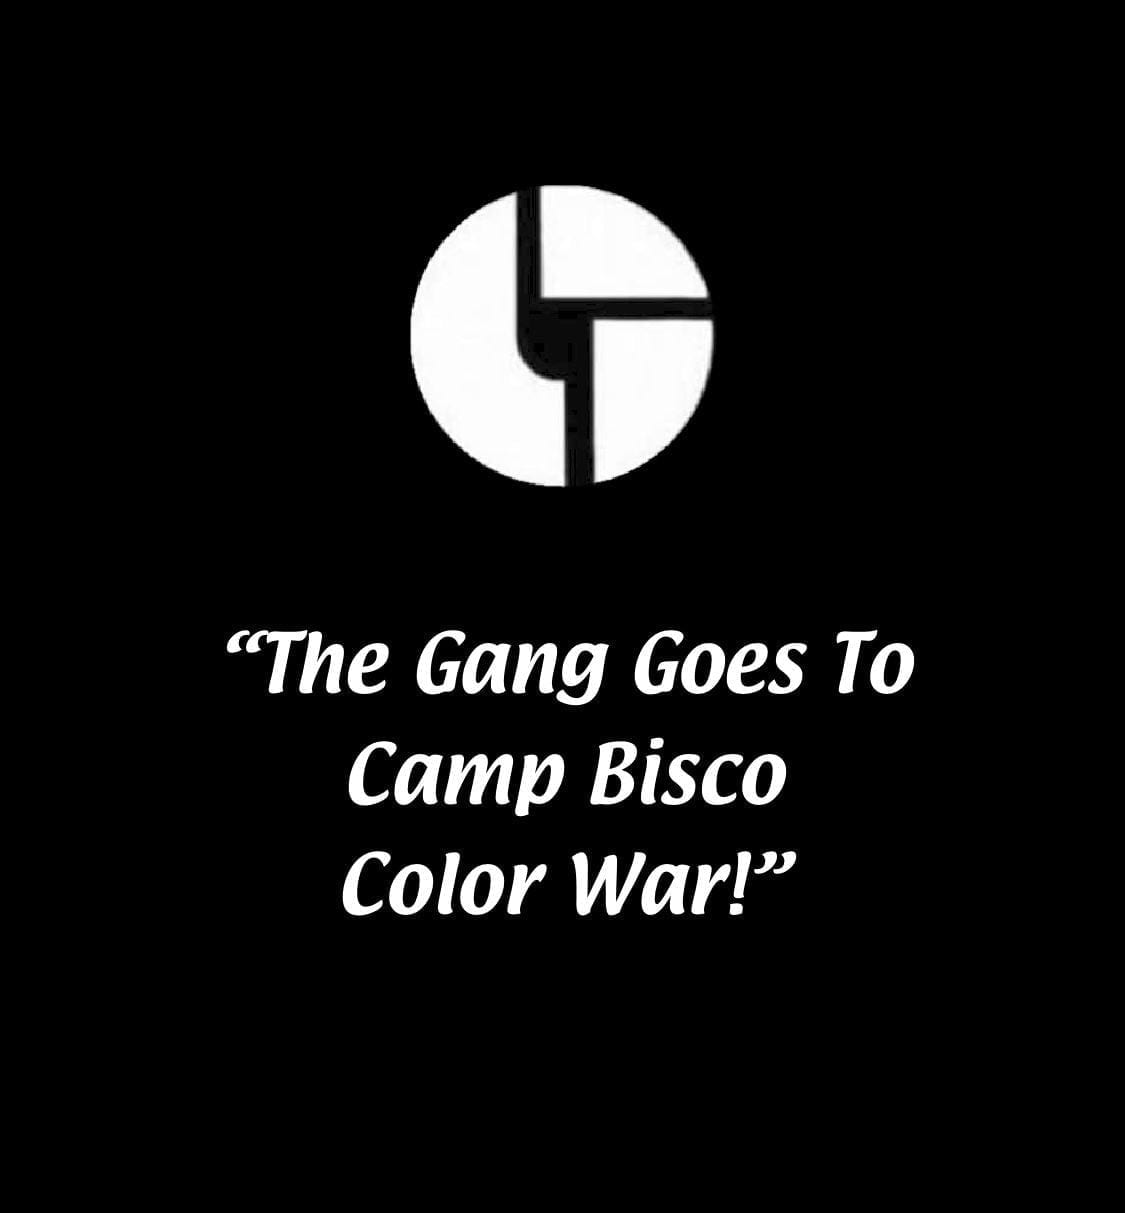 Prepare yourself for camp biscos color war xiii the over bezerk with camp bisco less than two weeks away its time to start preparing for color war xlll the over bezerk an homage to one of the greatest shows ever fandeluxe Choice Image